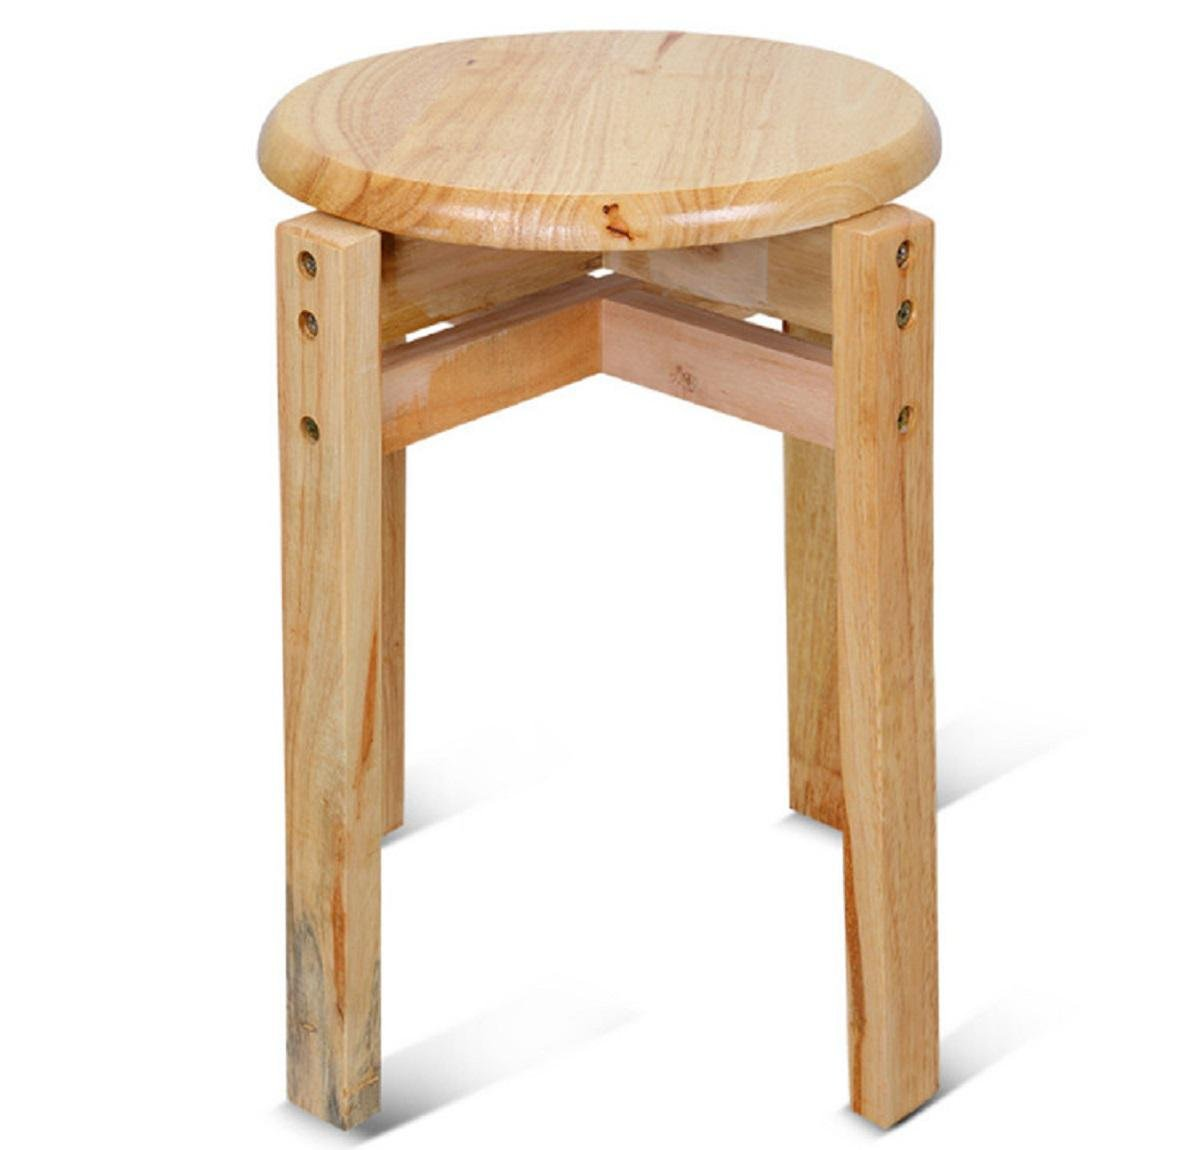 GAOJIAN Solid Wood Round Stool High-Foot Round Chair Living Room Small Stool Reinforcement Oak House Restaurant Small Round Stool High 44Cm Wide 29Cm